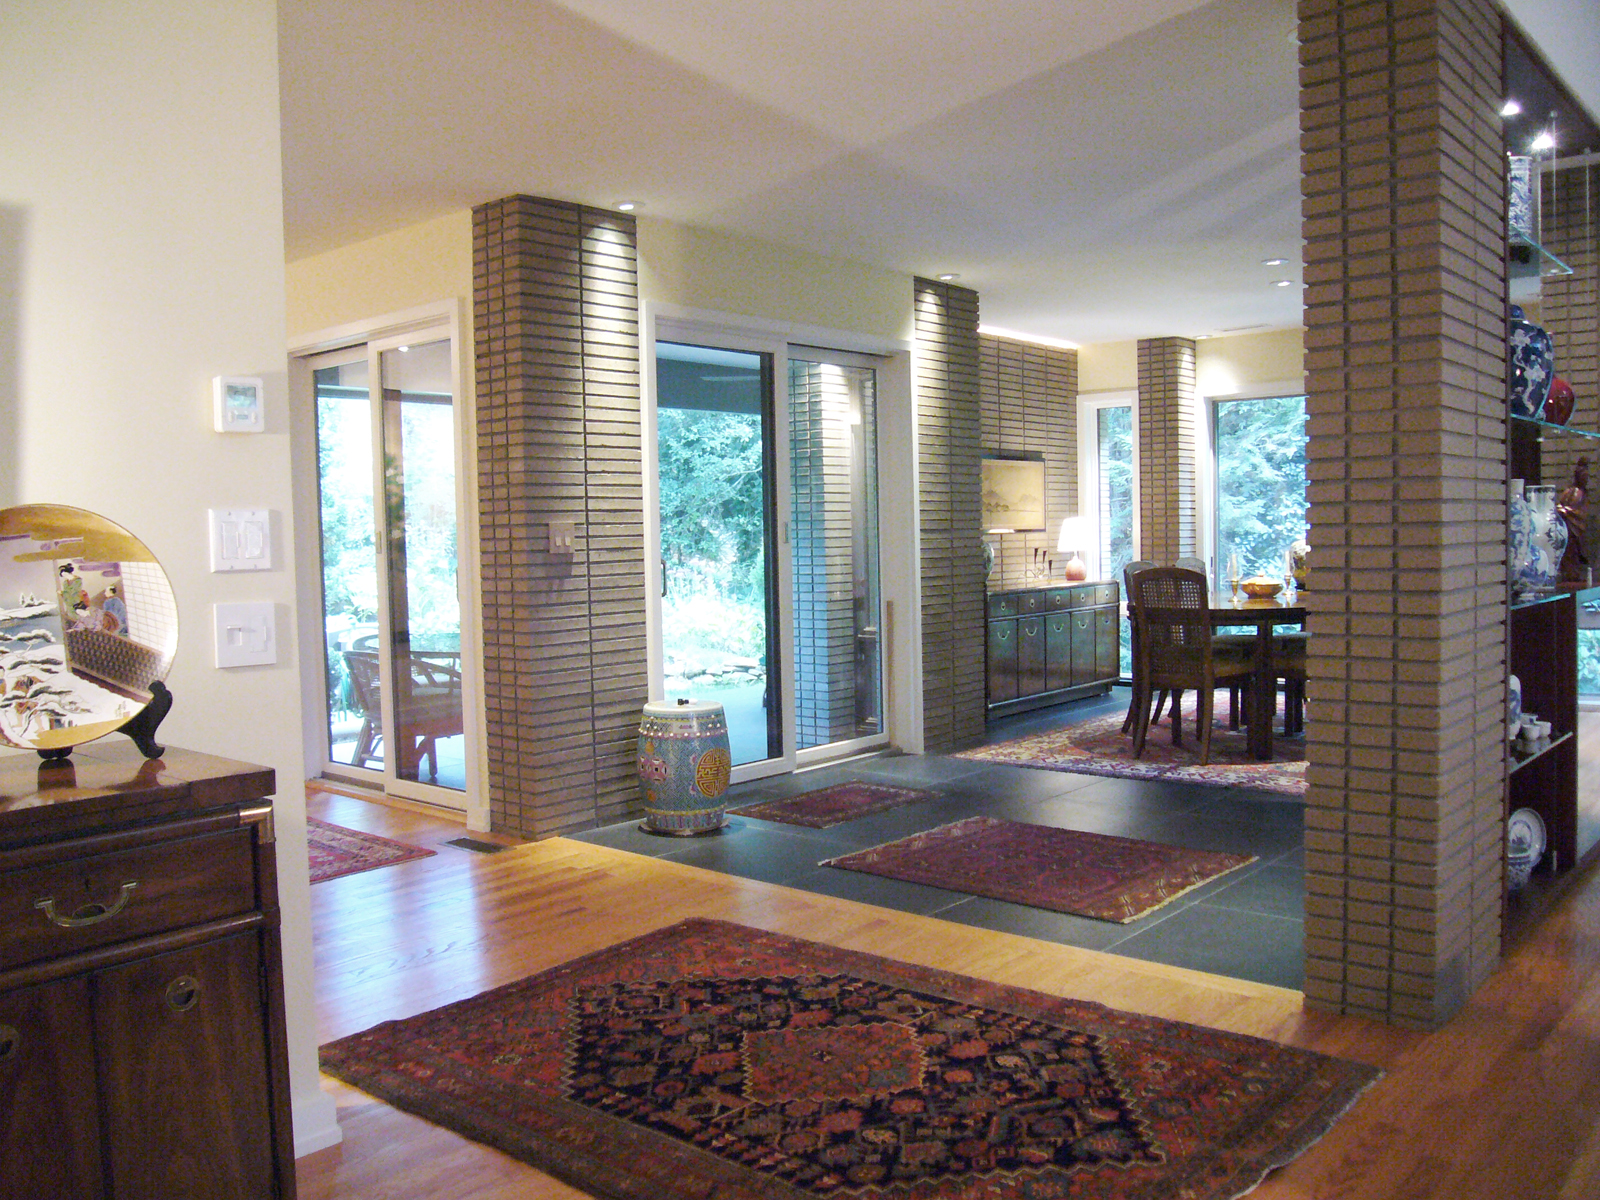 A Roman Brick Dining Area Addded to an Exterior Porch